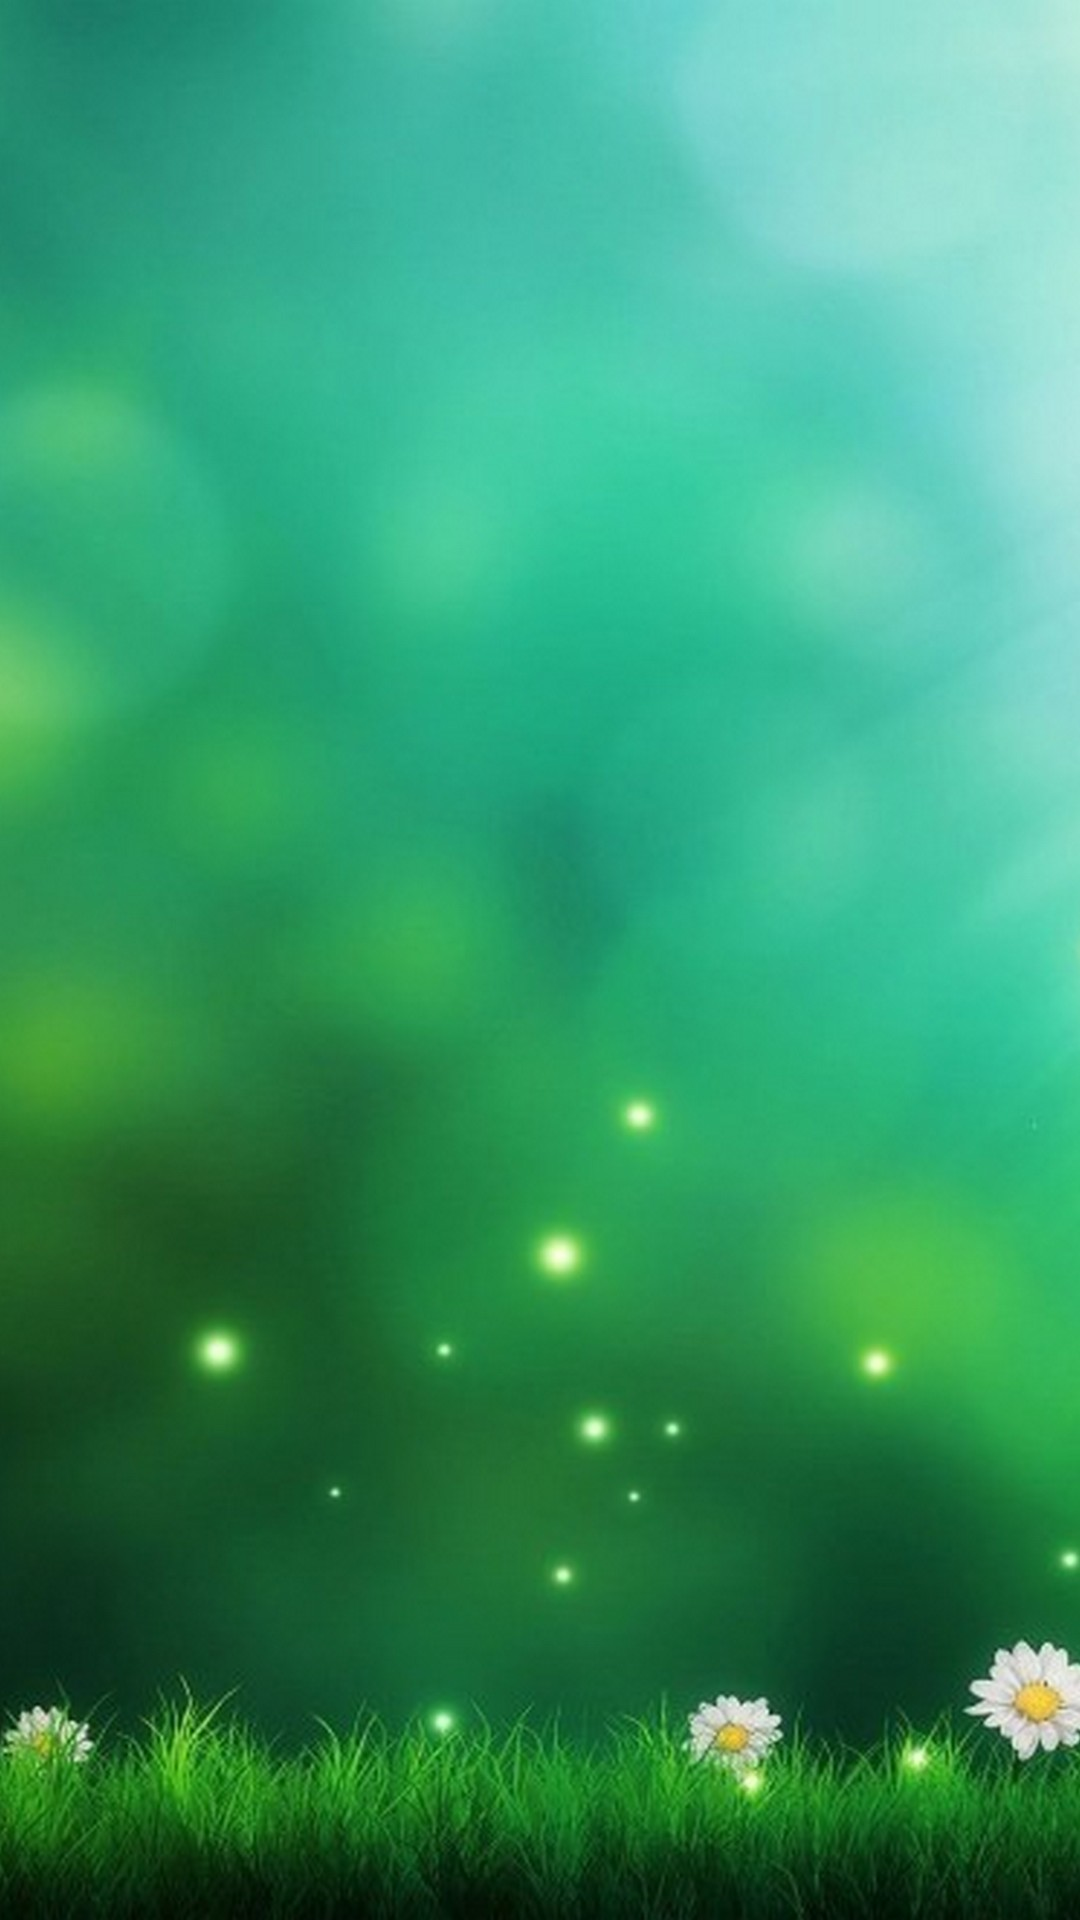 Iphone X Wallpaper Emerald Green With Image Resolution Windows Phone Wallpaper Nature 2947103 Hd Wallpaper Backgrounds Download